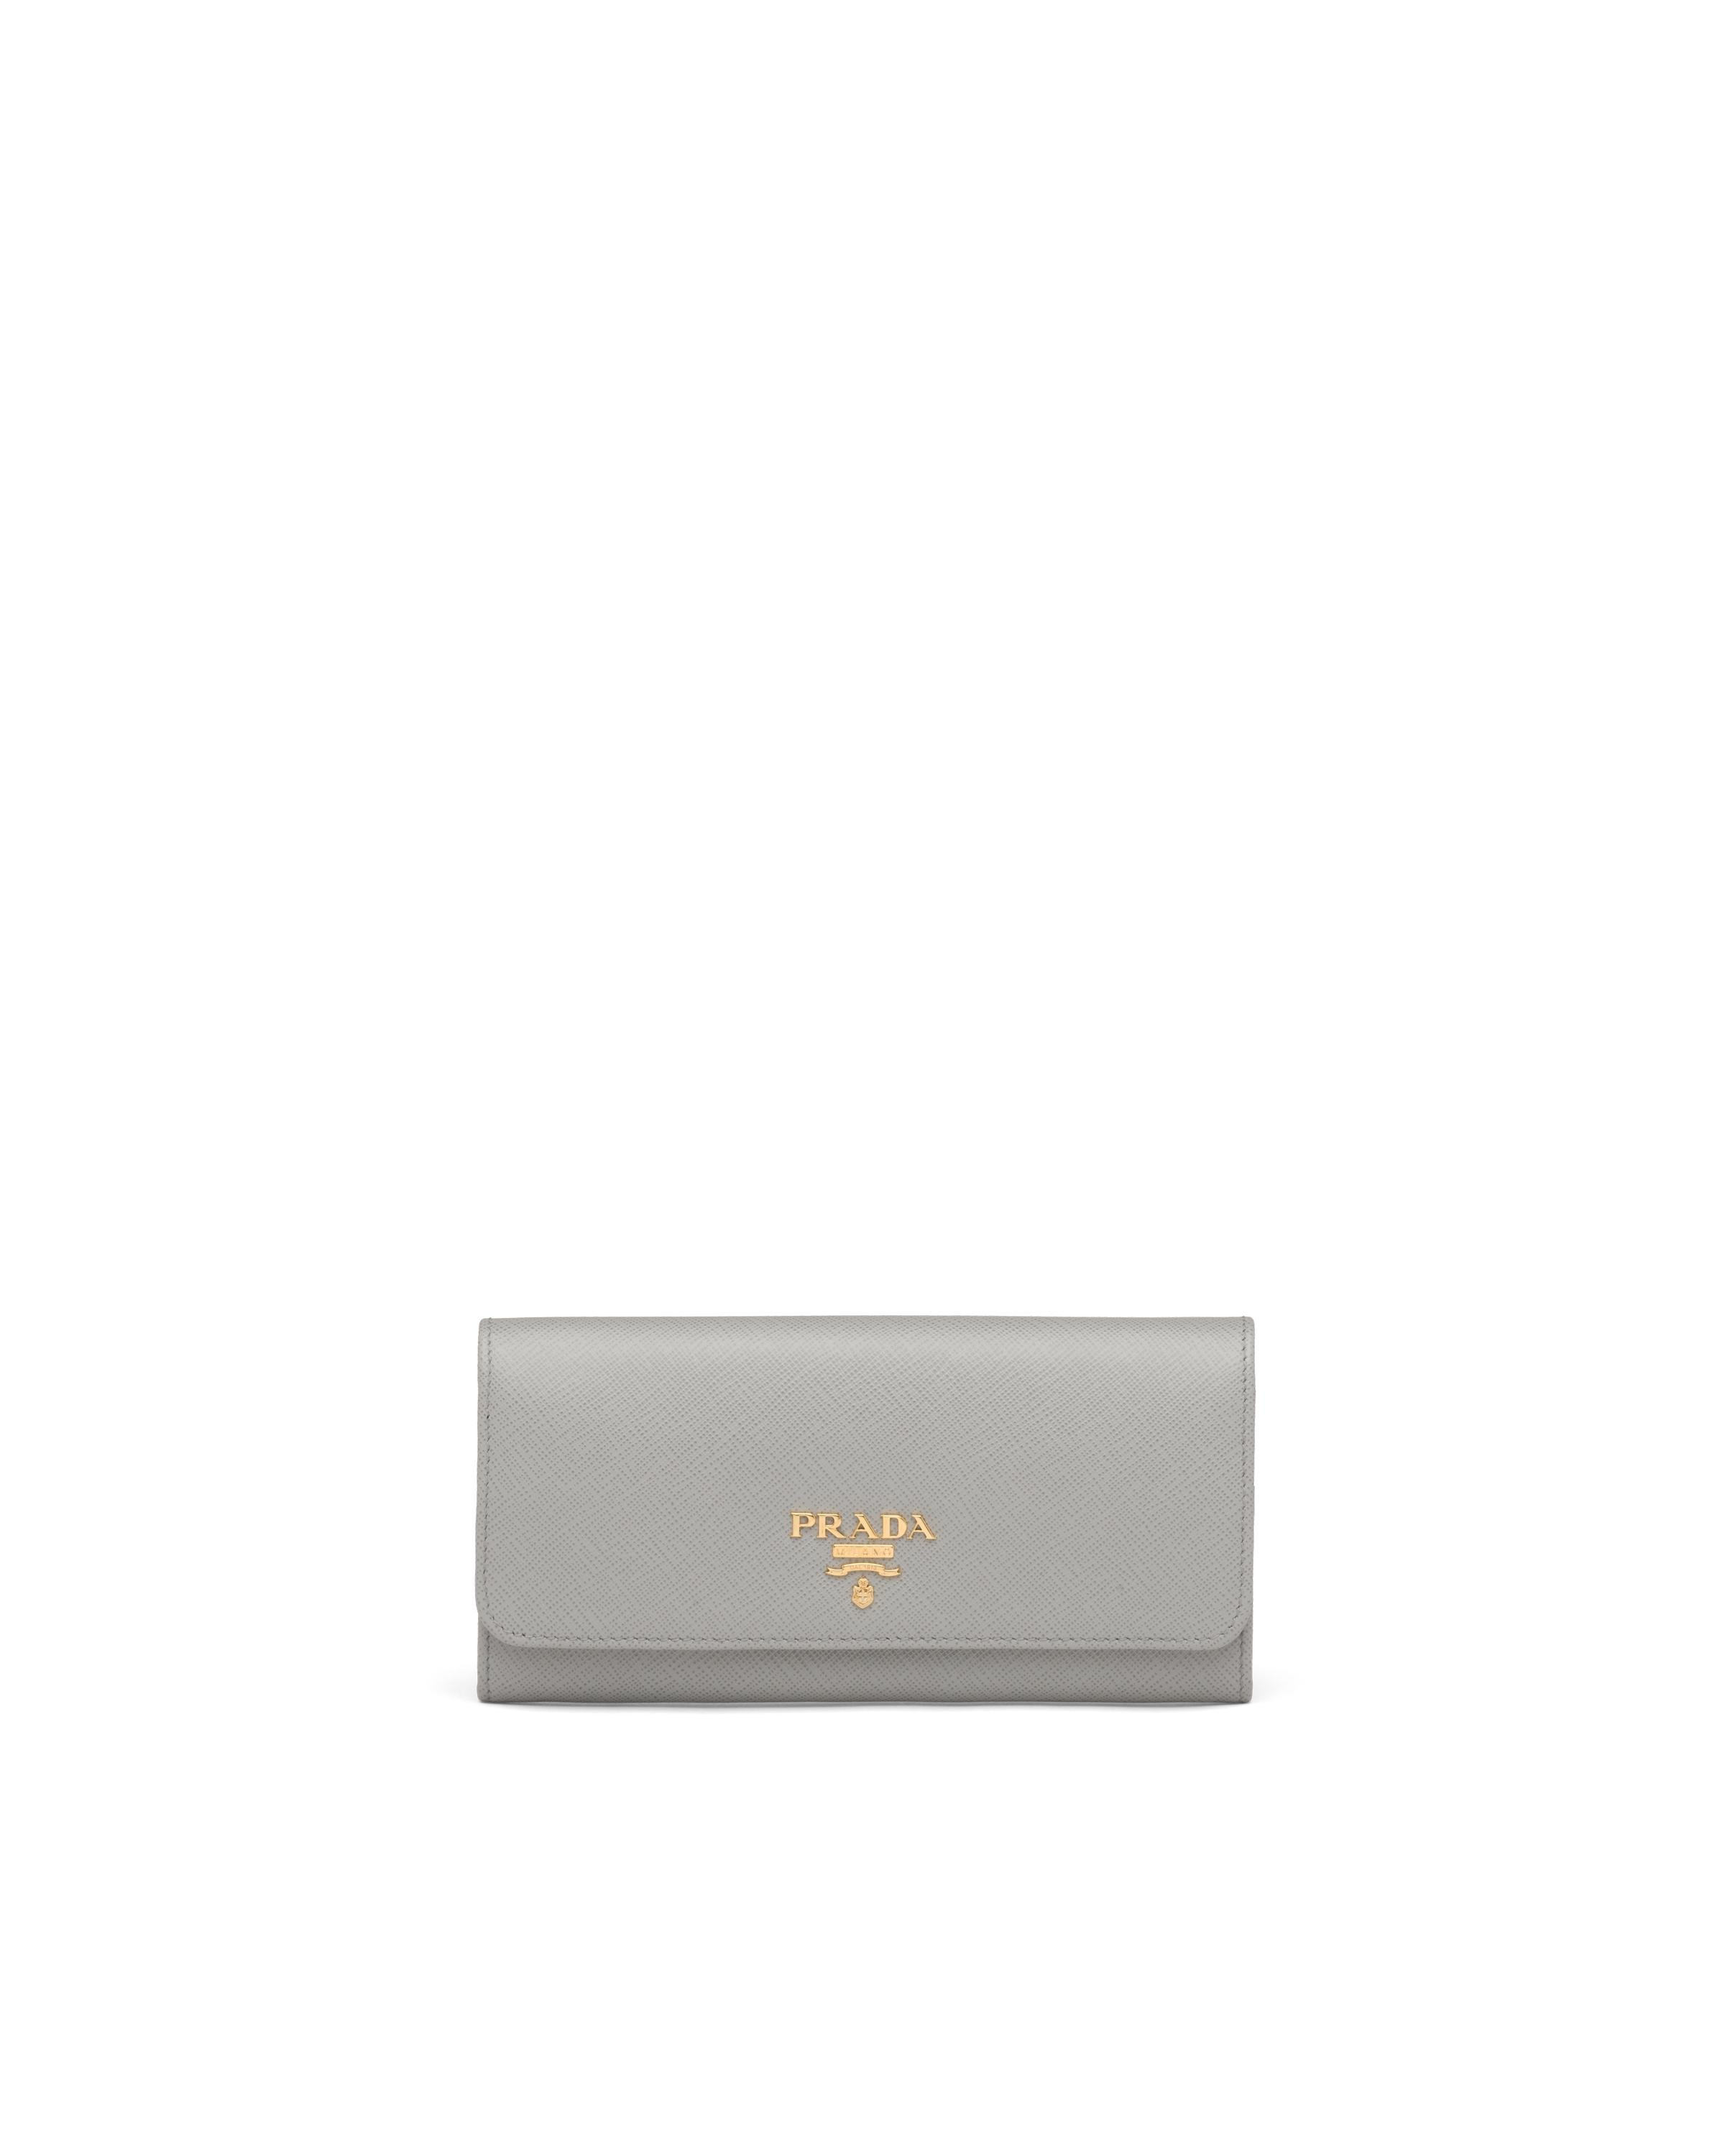 Large Saffiano Leather Wallet Women Cloudy Gray/marble Gray 6